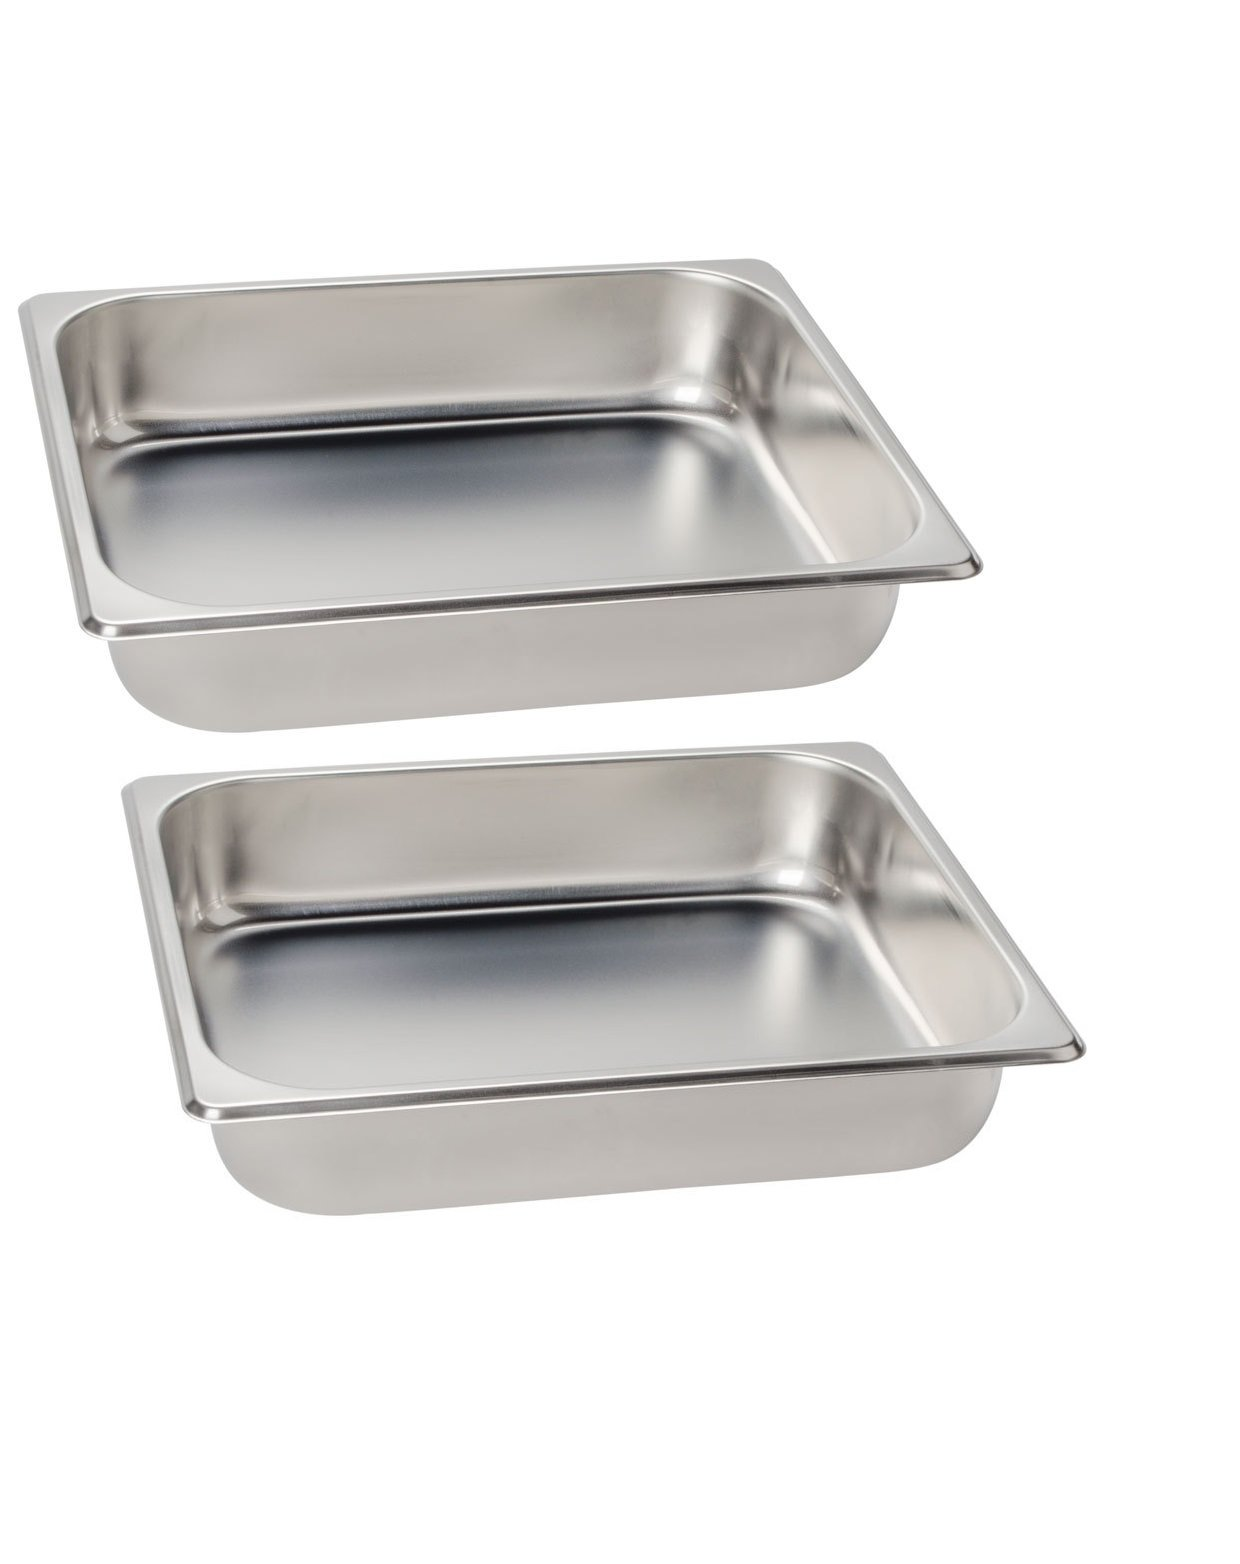 Premier Choice 2 Pack 1/2 Size Chafer Food Pan Stainless Steel Steam Table / Hotel Pan - 2 1/2'' Deep by Premier Choice